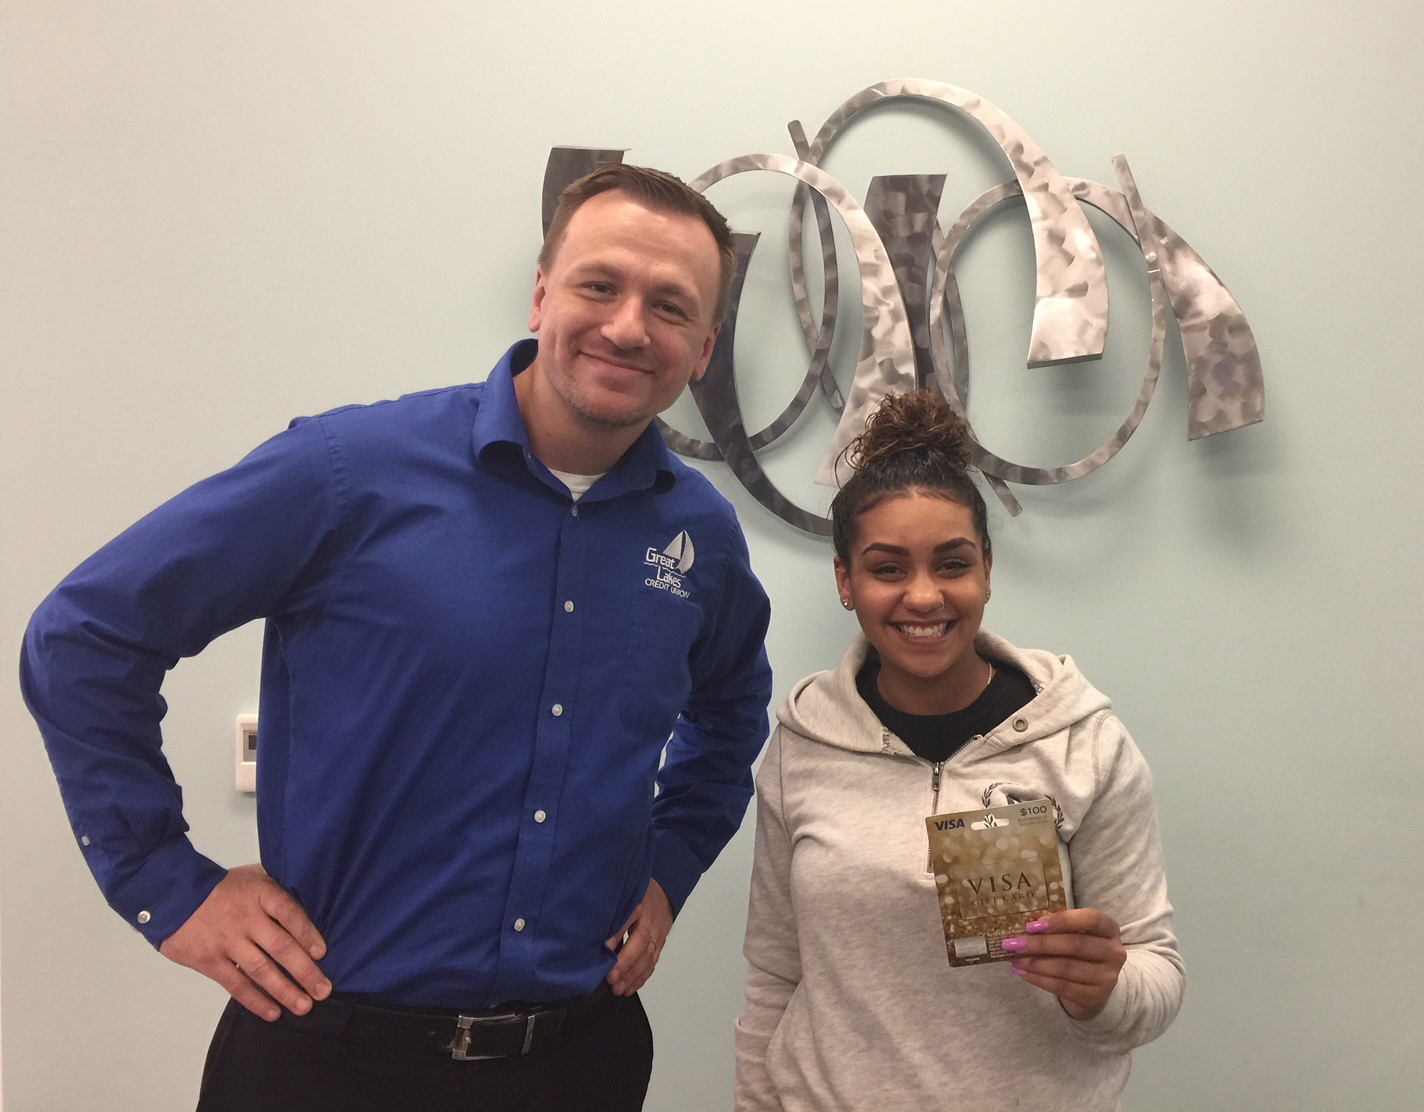 Youth savings month winner holding up her VISA gift card